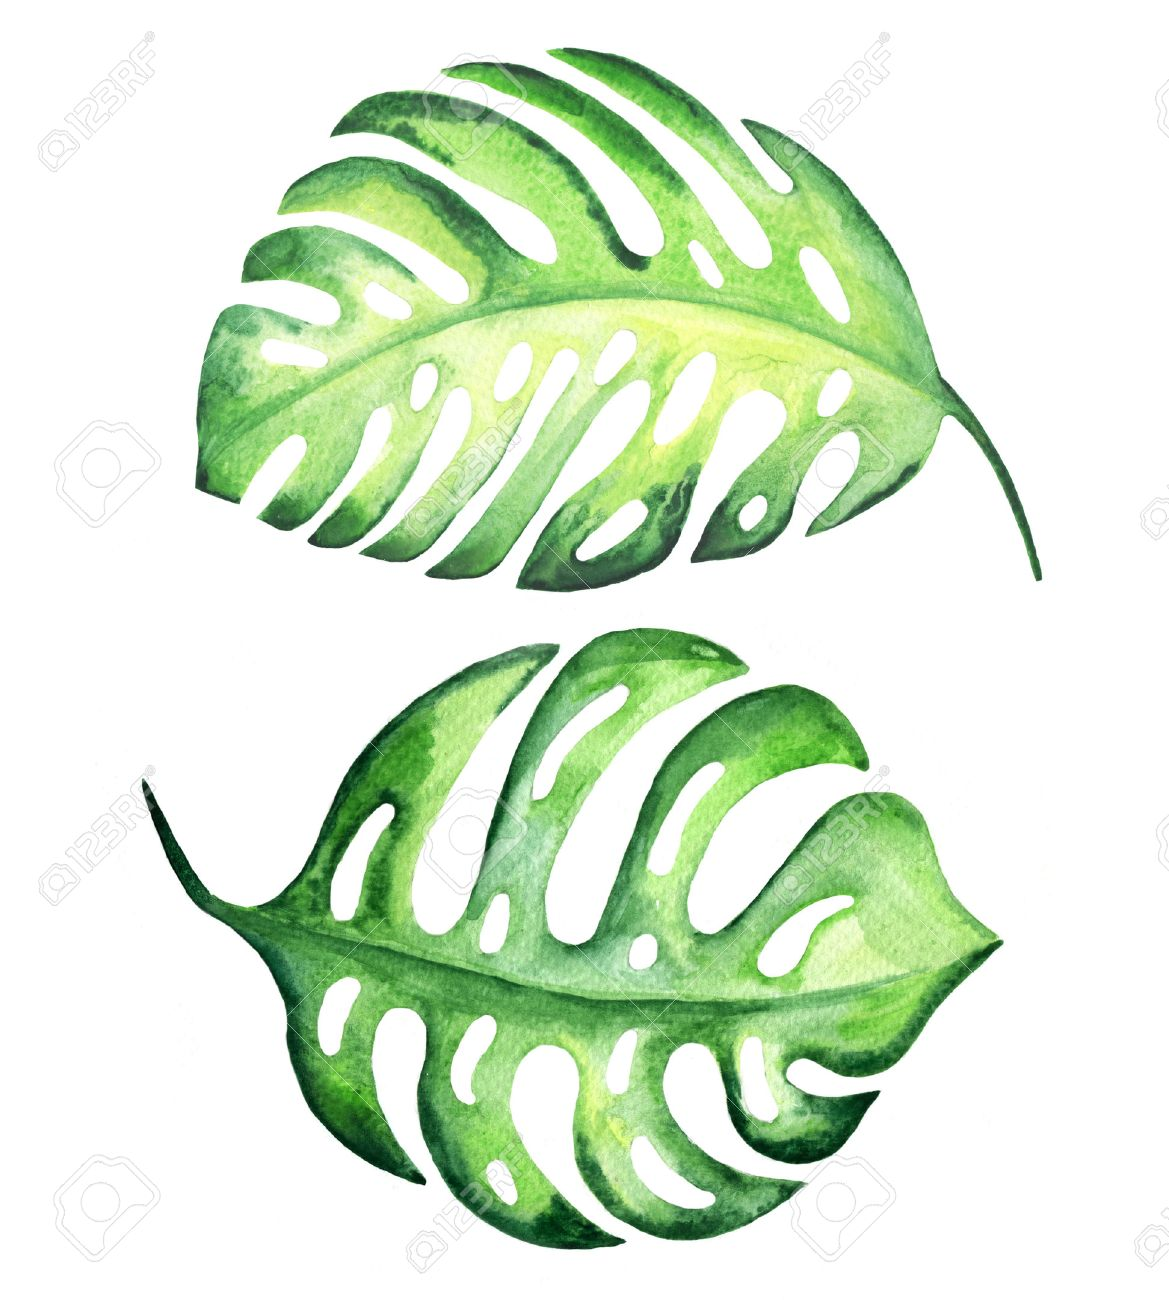 Tropical Exotic Leaves Monstera Watercolor Illustration Stock Photo Picture And Royalty Free Image Image 33036019 Alibaba.com offers 845 exotic tropical plants products. tropical exotic leaves monstera watercolor illustration